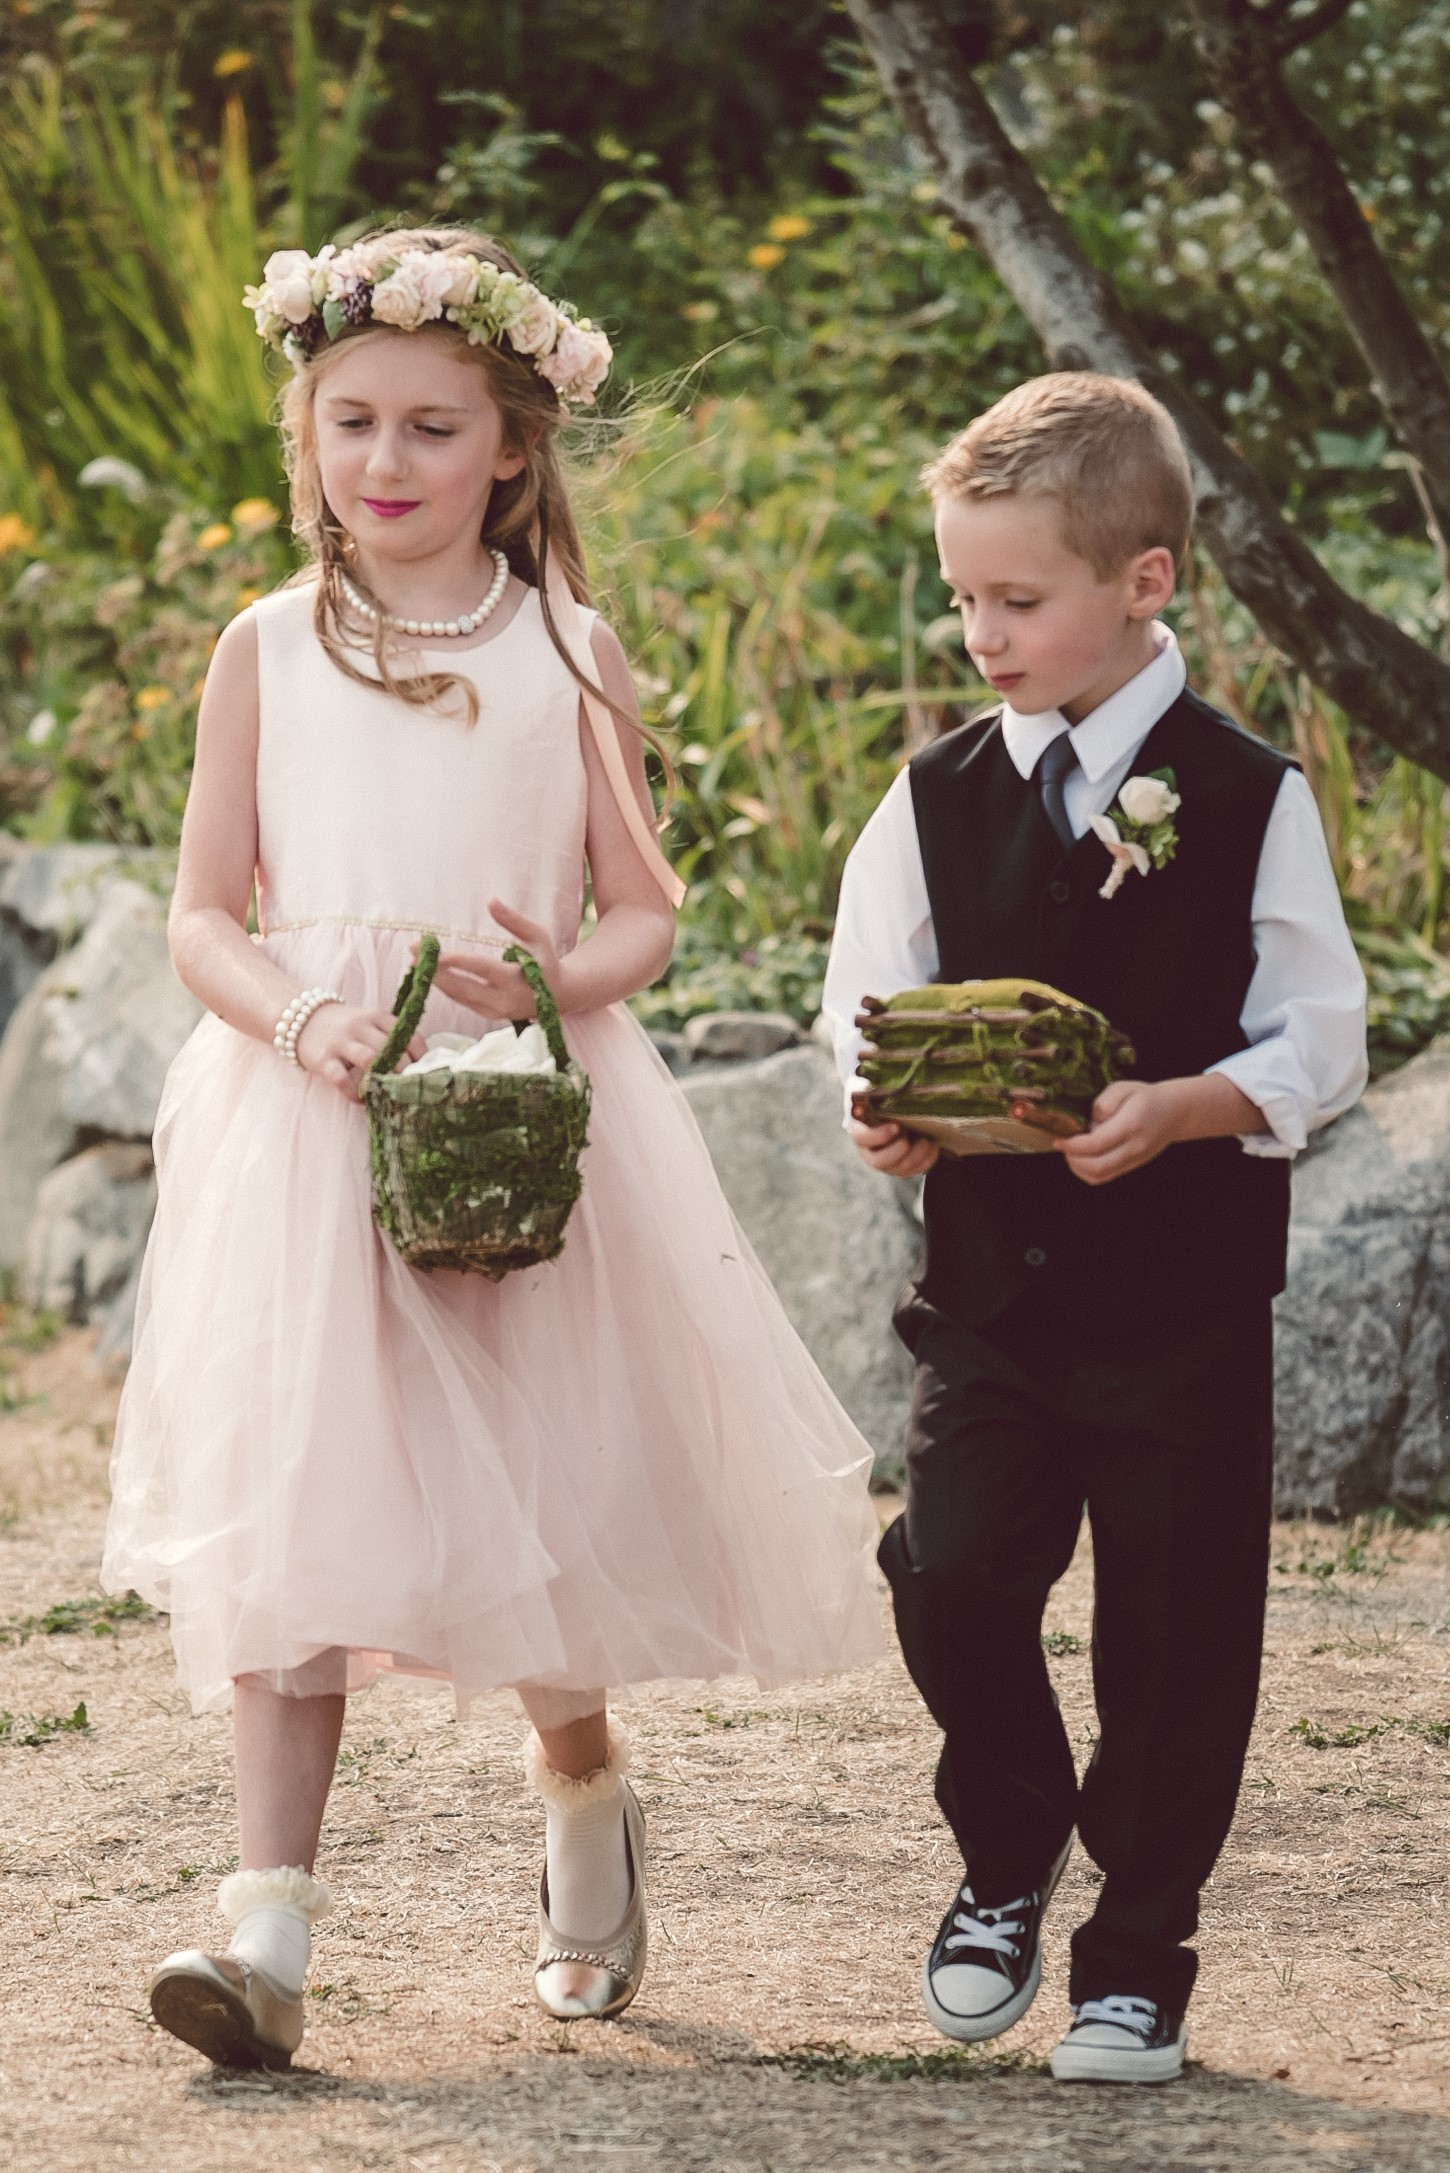 Flower Crown For Flower Girl By Tobey Nelson Events Design Photo